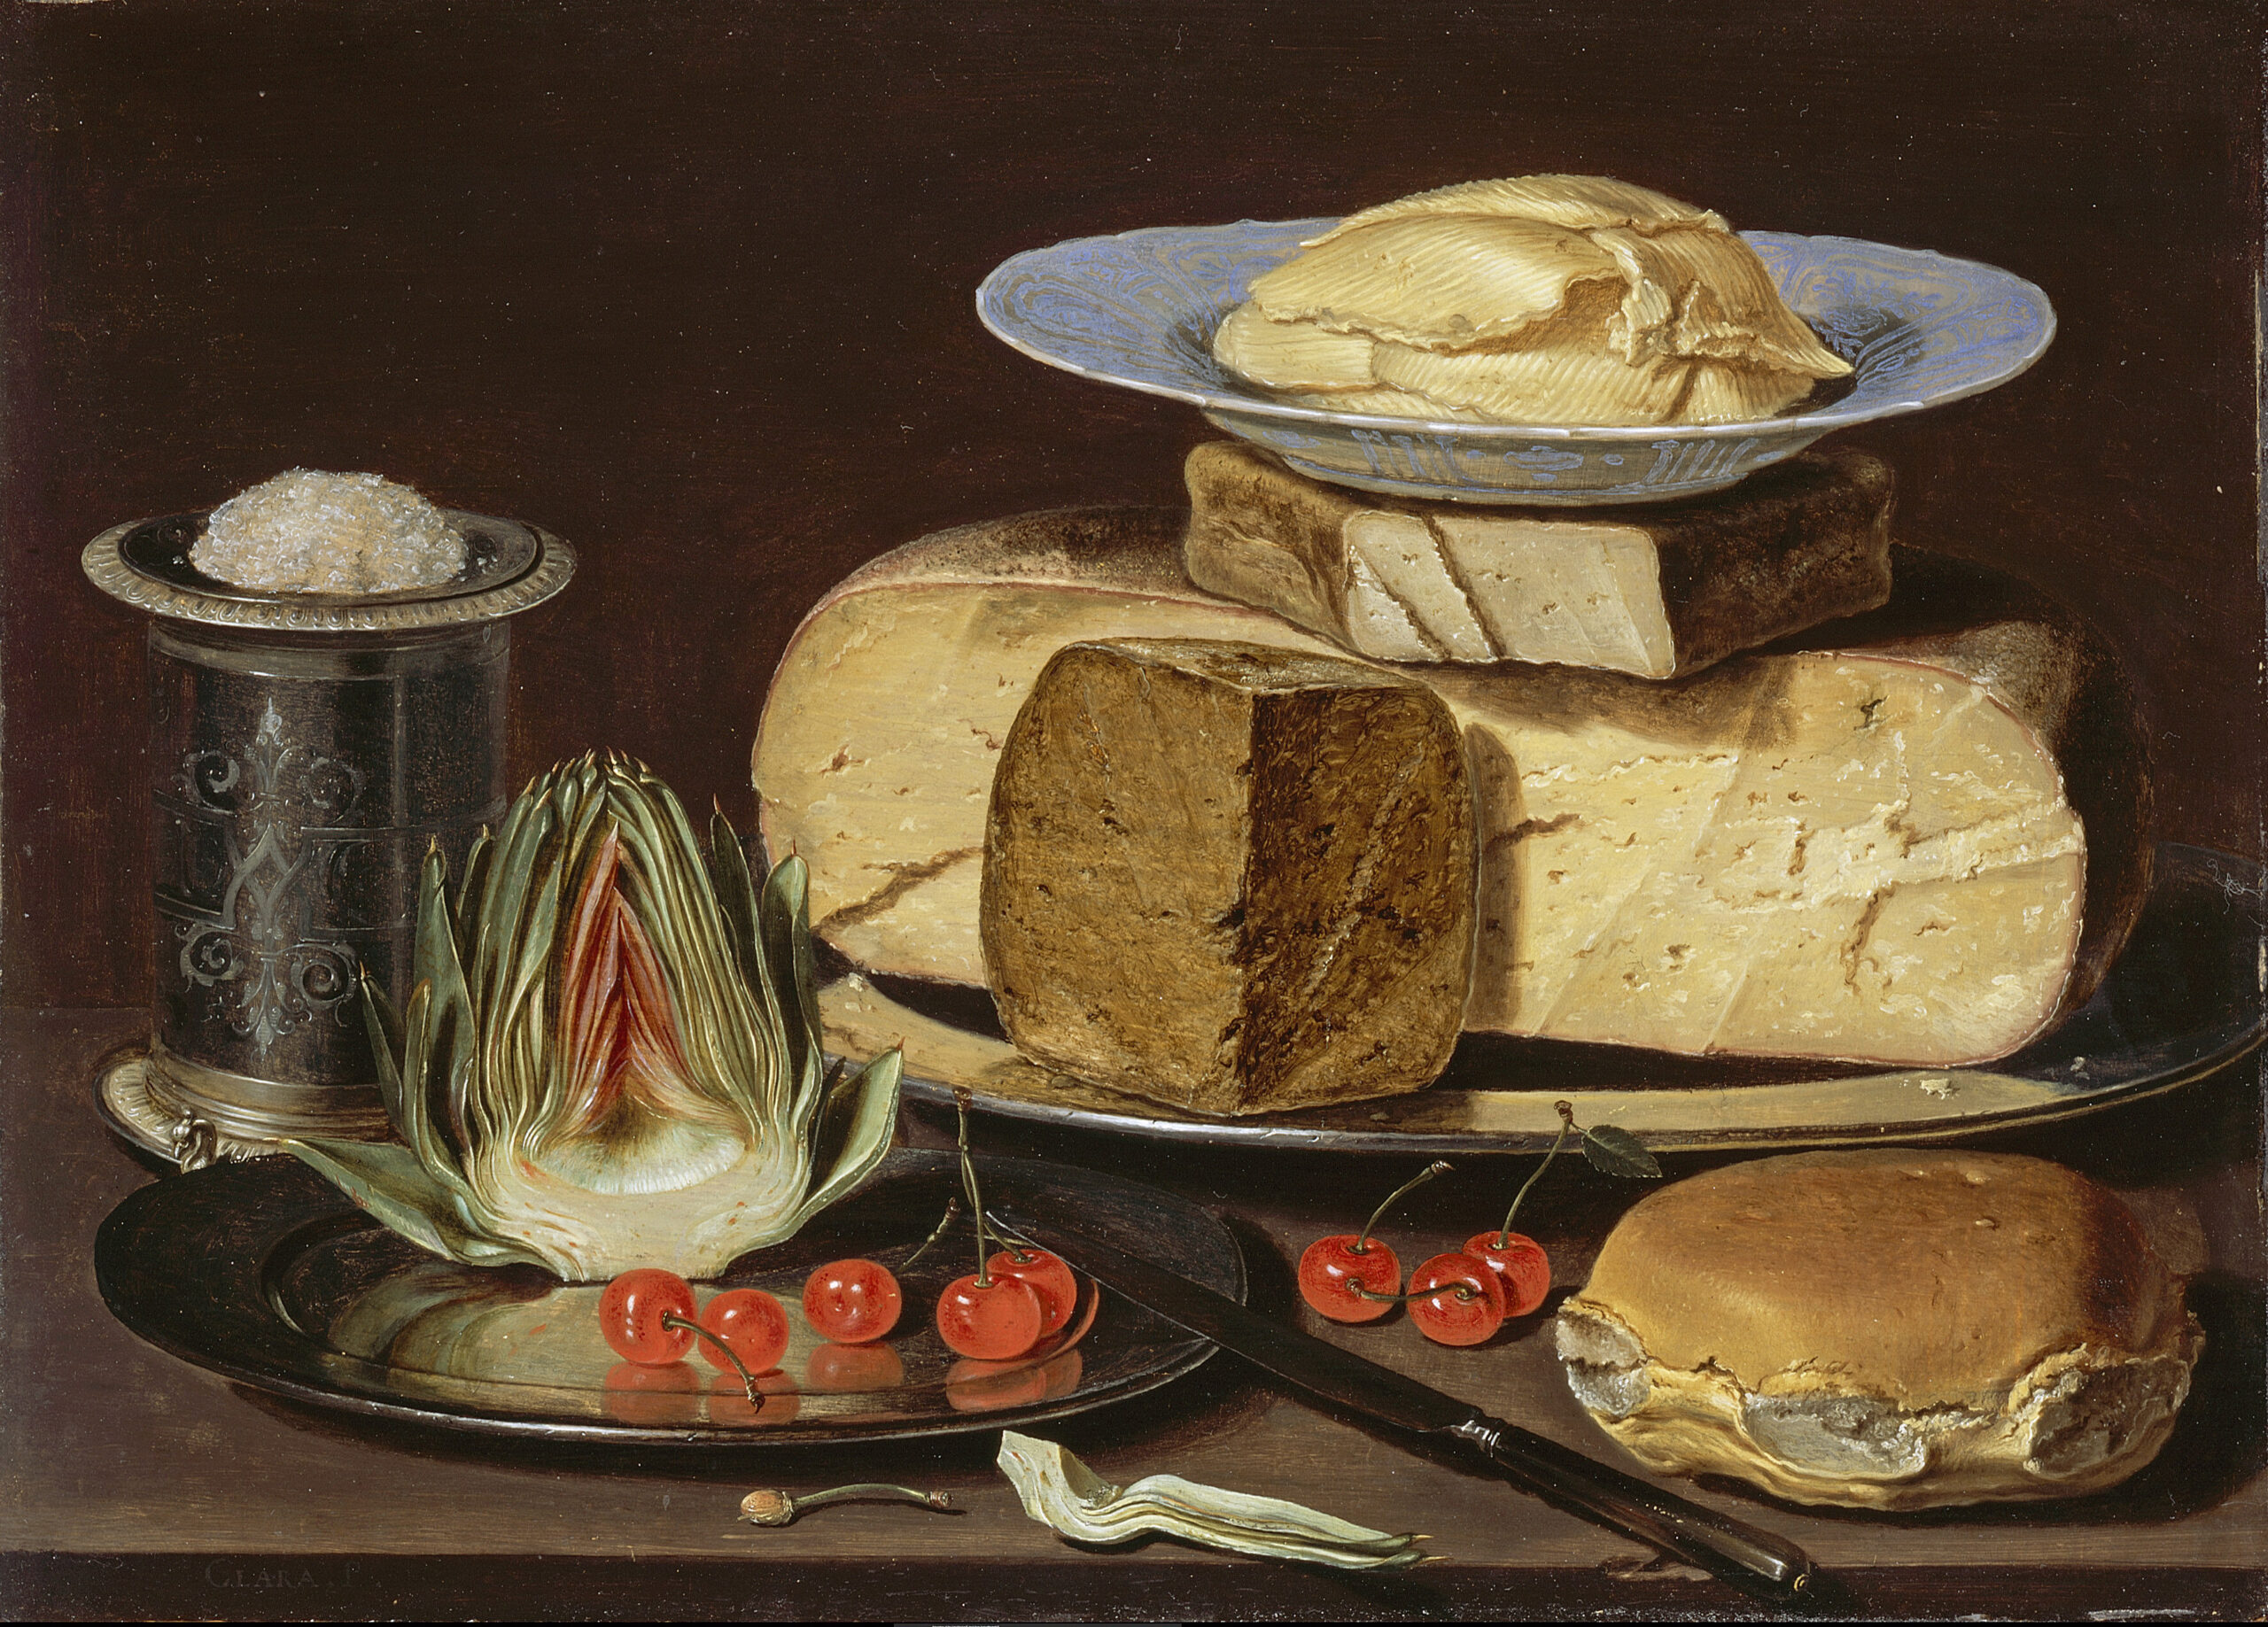 Clara Peeters (ca. 1594-after 1639/before 1657), <em>Still Life with Cheeses, Artichoke, and Cherries</em>, ca. 1625<br>LACMA, Los Angeles